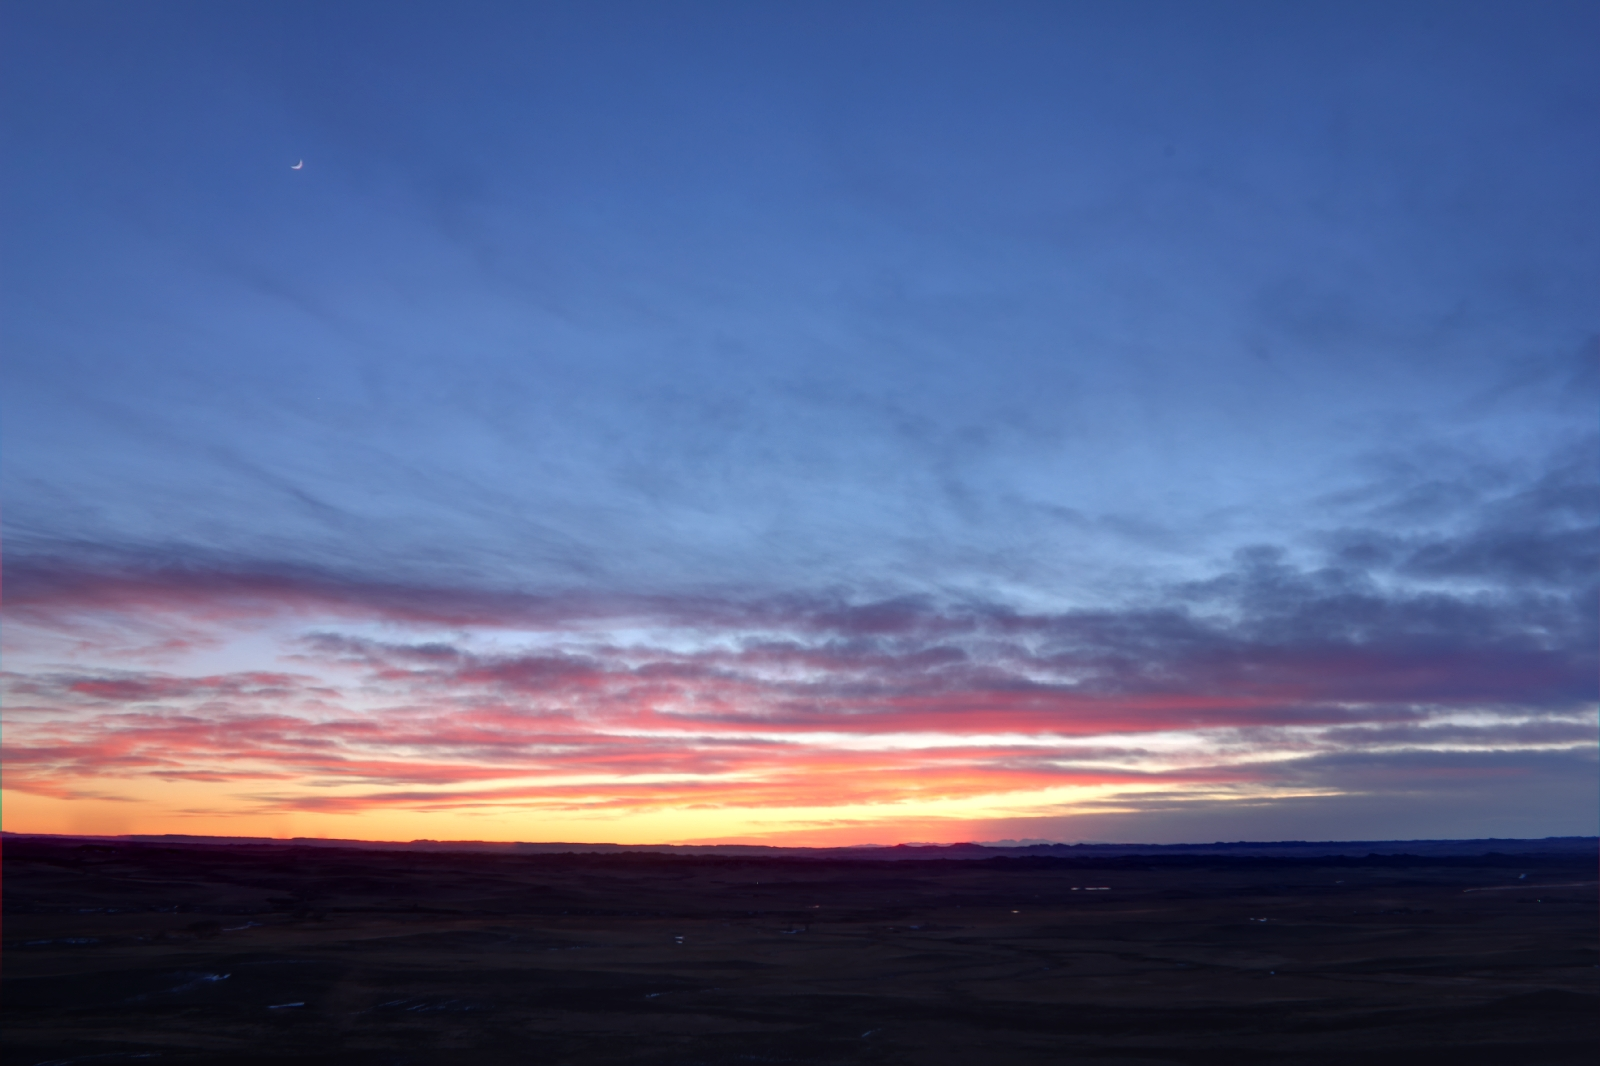 Montana Sunset with Big Horn Mountains on Horizon ...